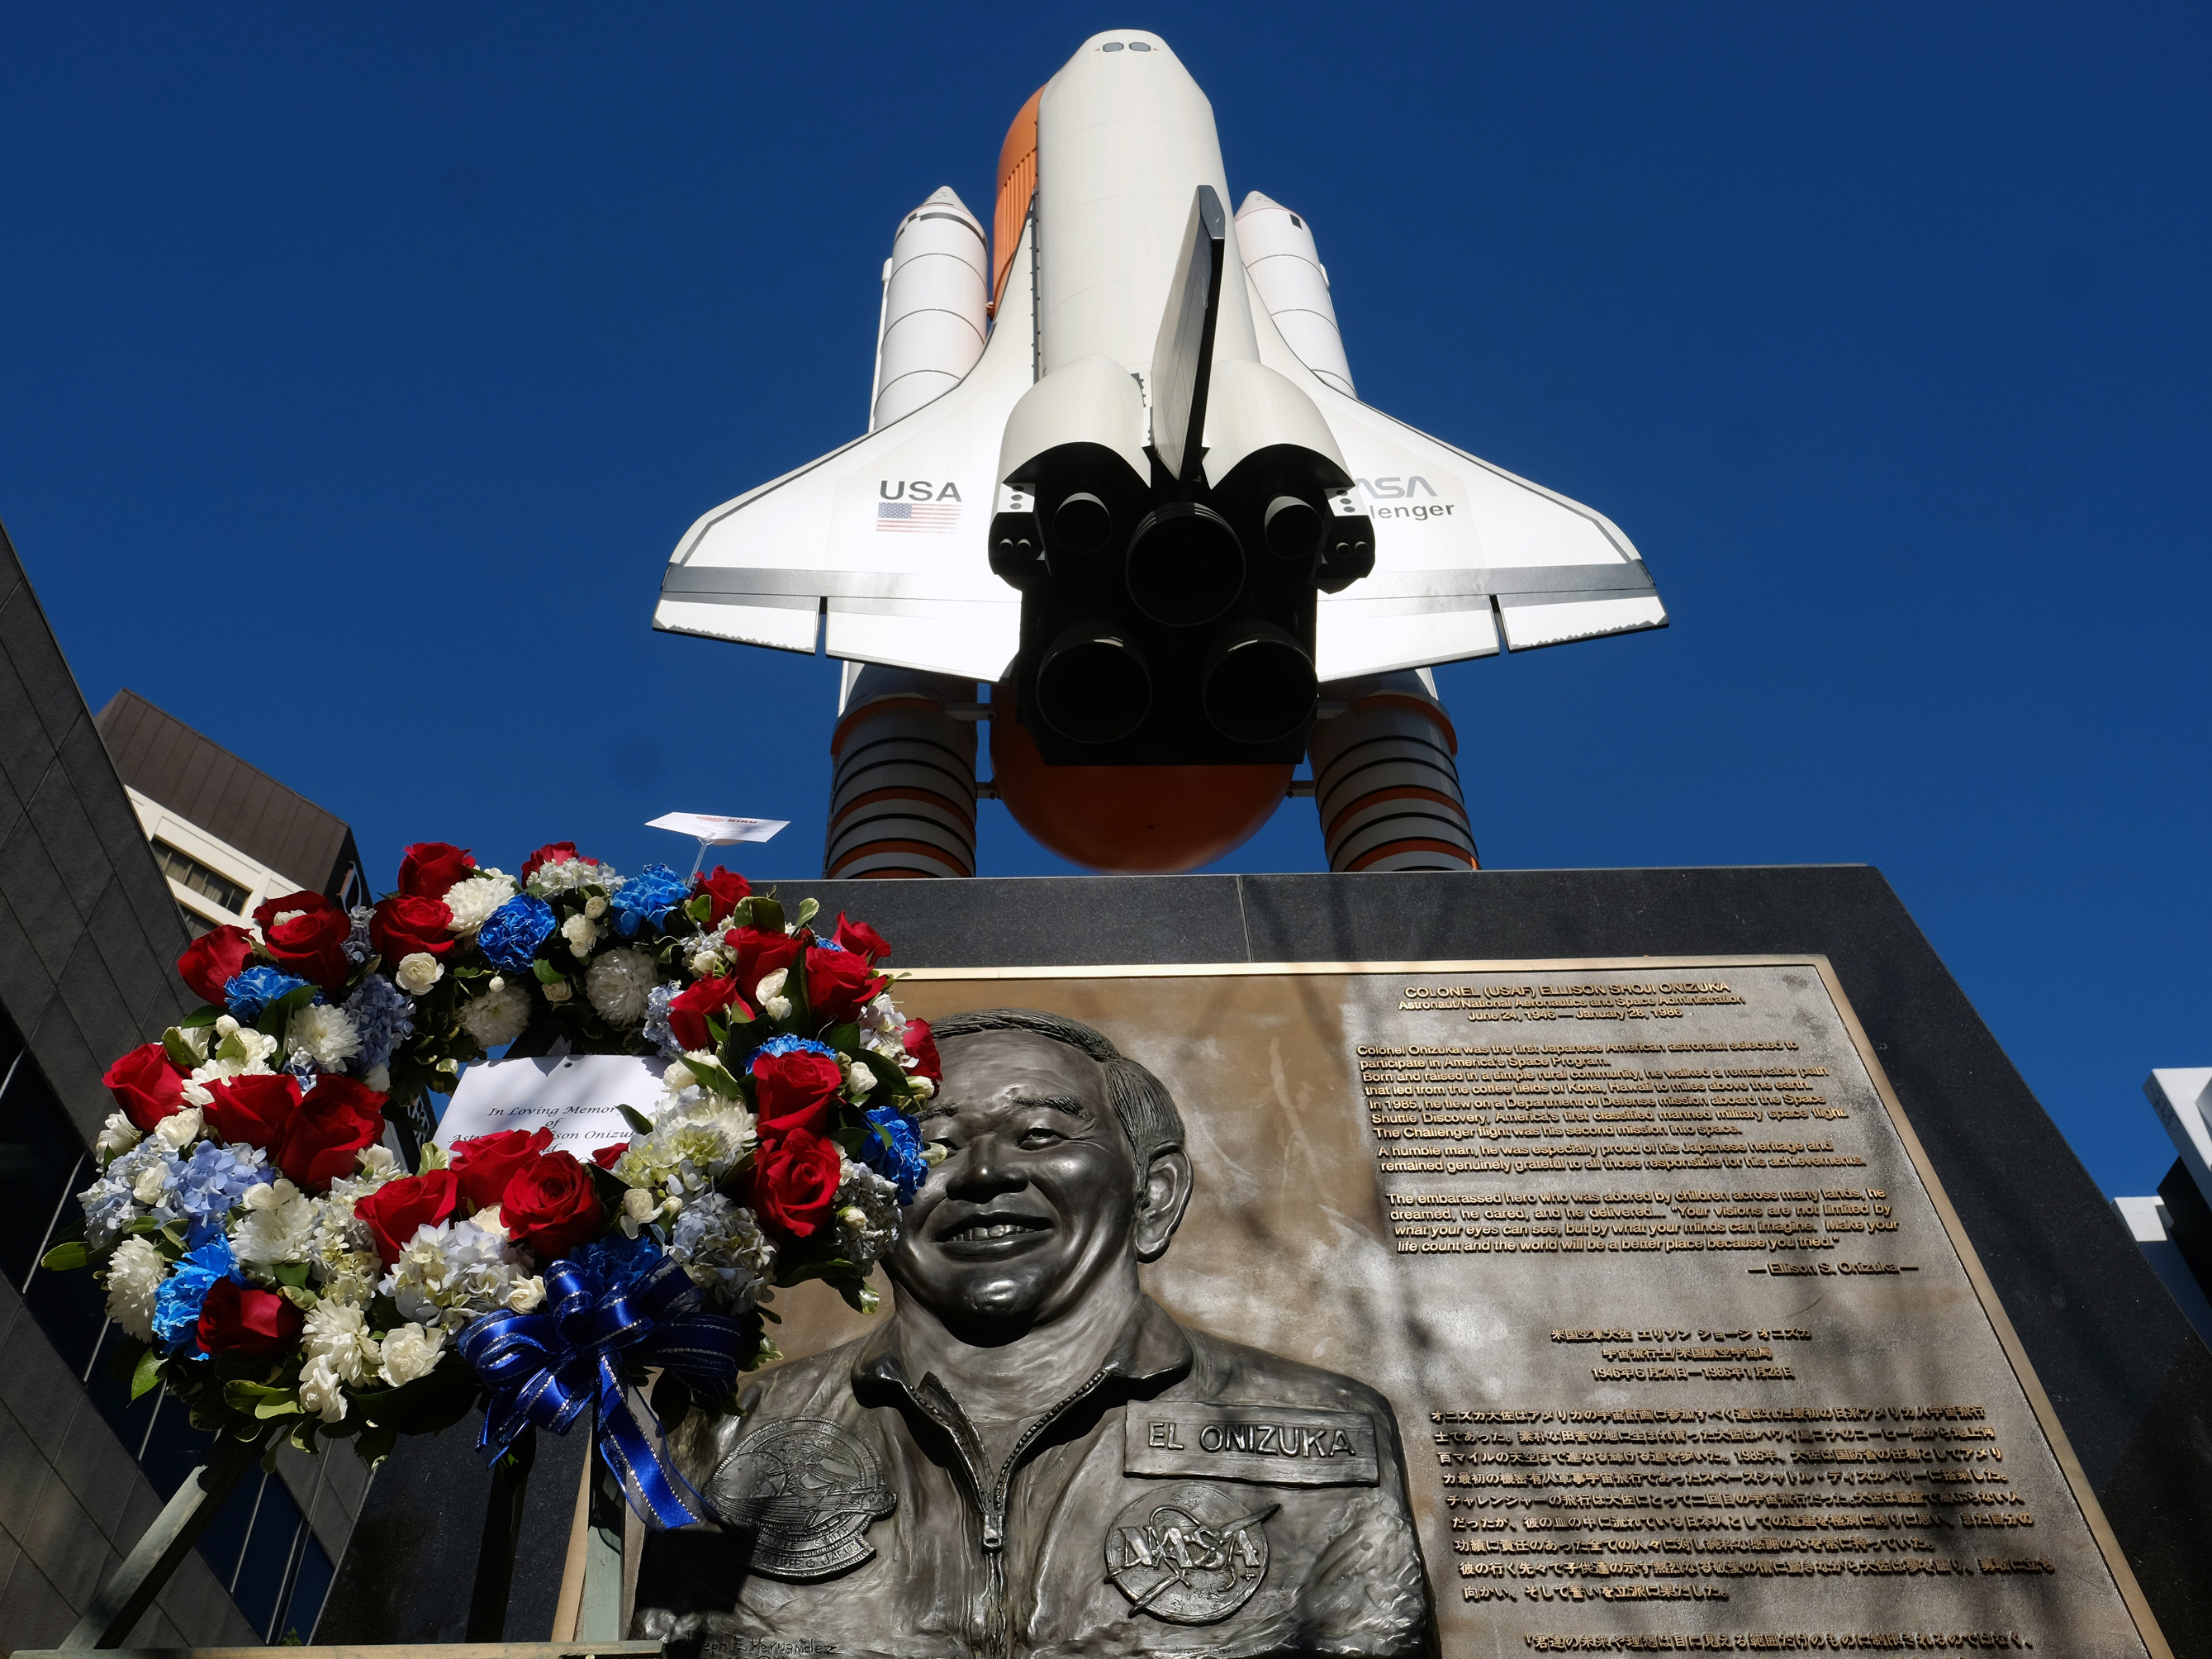 space shuttle challenger radio - photo #25